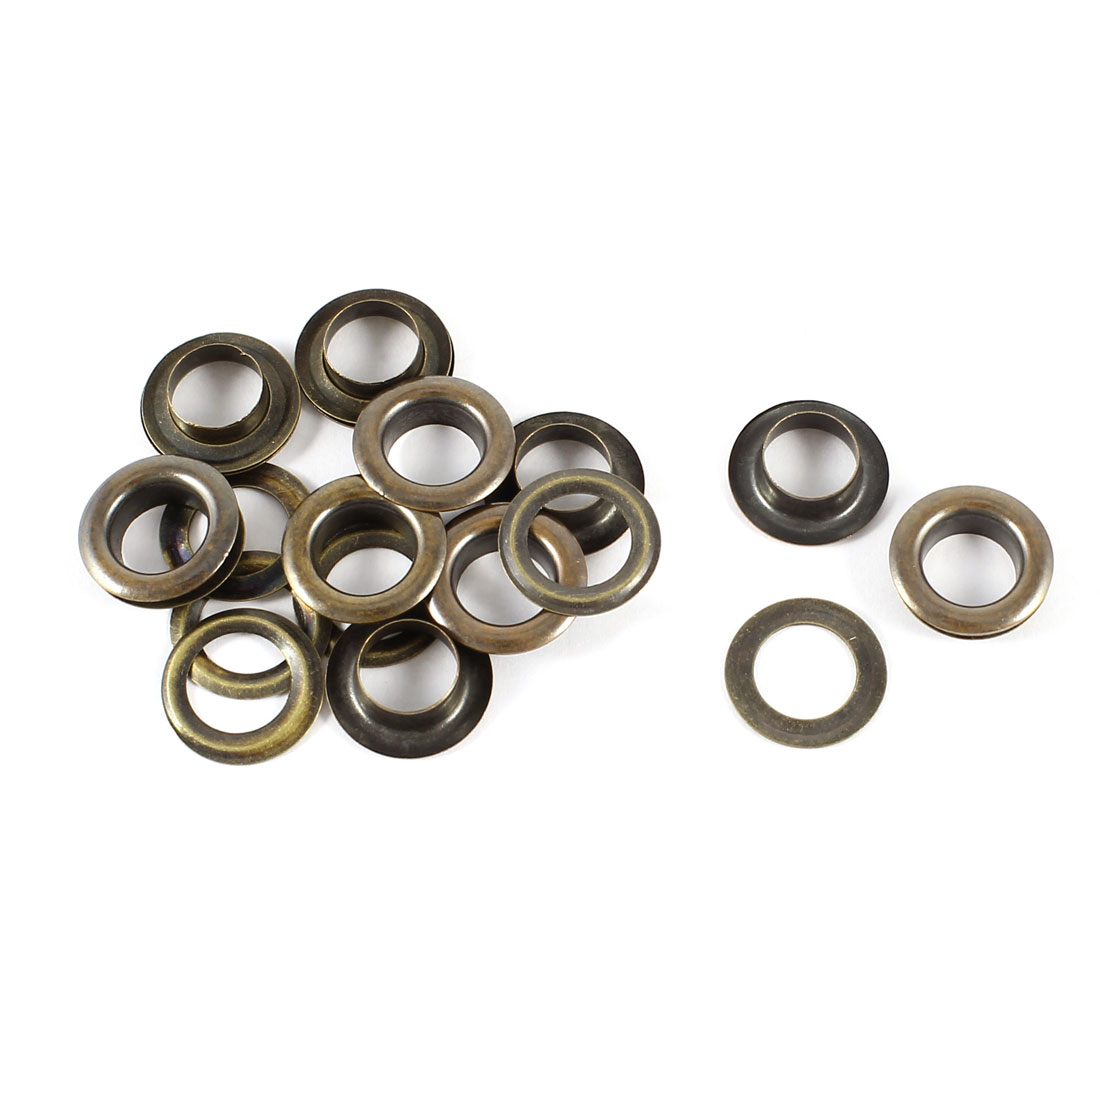 10pcs Bronze Tone 8mm Diameter Solid Brass Grommet Washers Eyelets Handy Tool